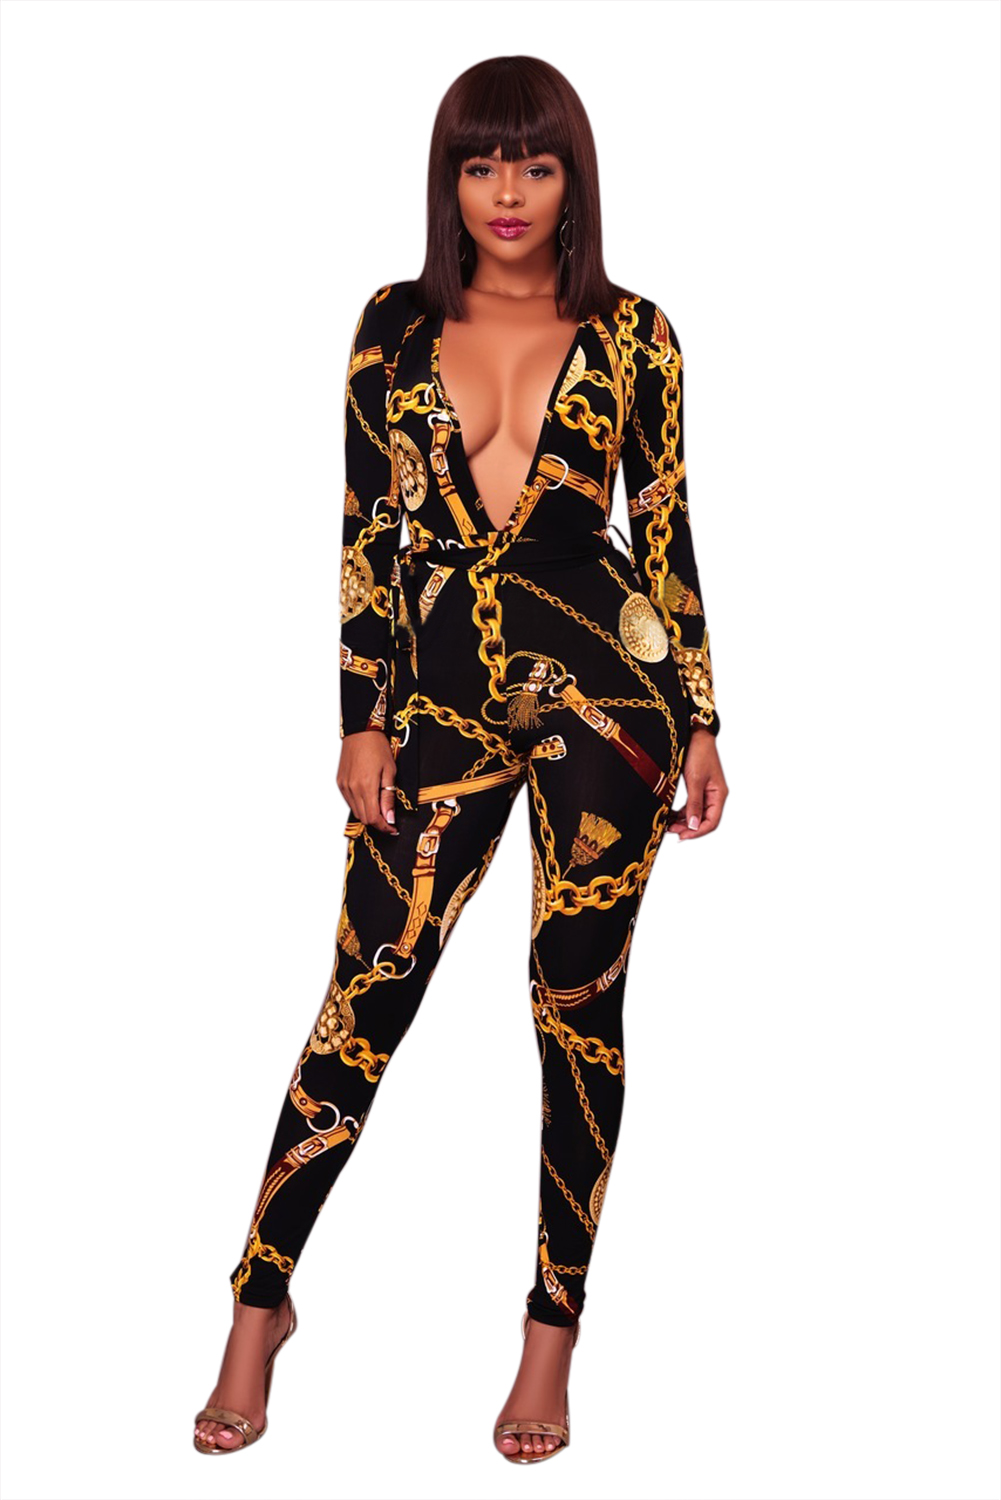 Make a Fashion Statement with this Black Sexy Deep V Neck Gold Chain Print Skinny Jumpsuit